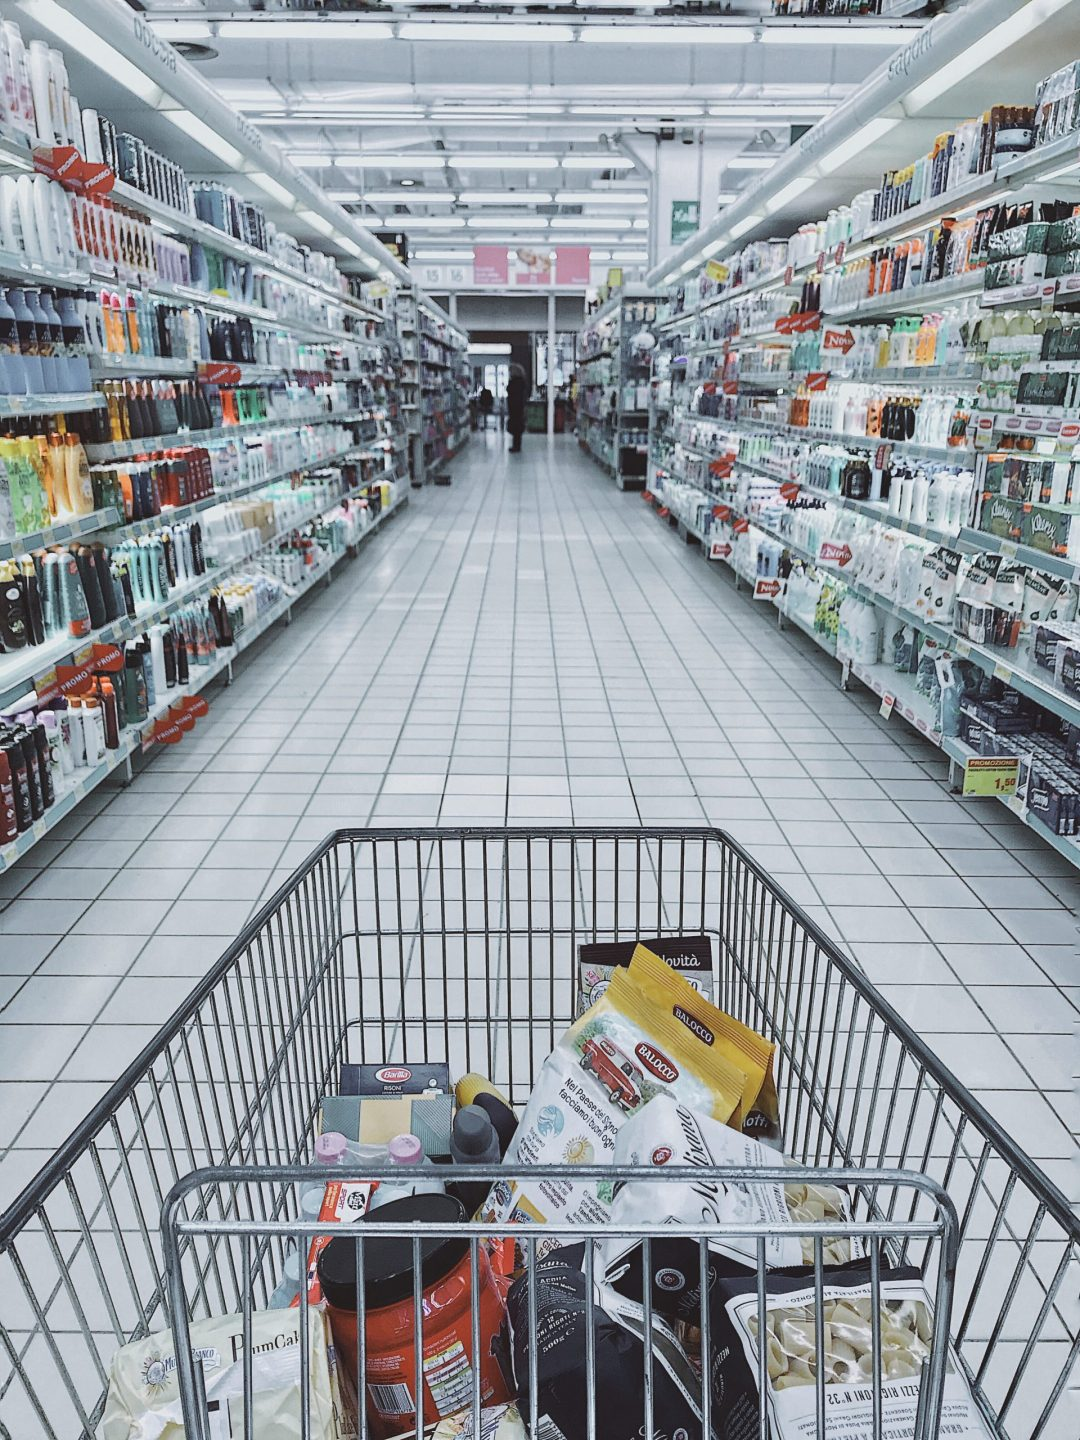 shopping cart in supermarket aisle